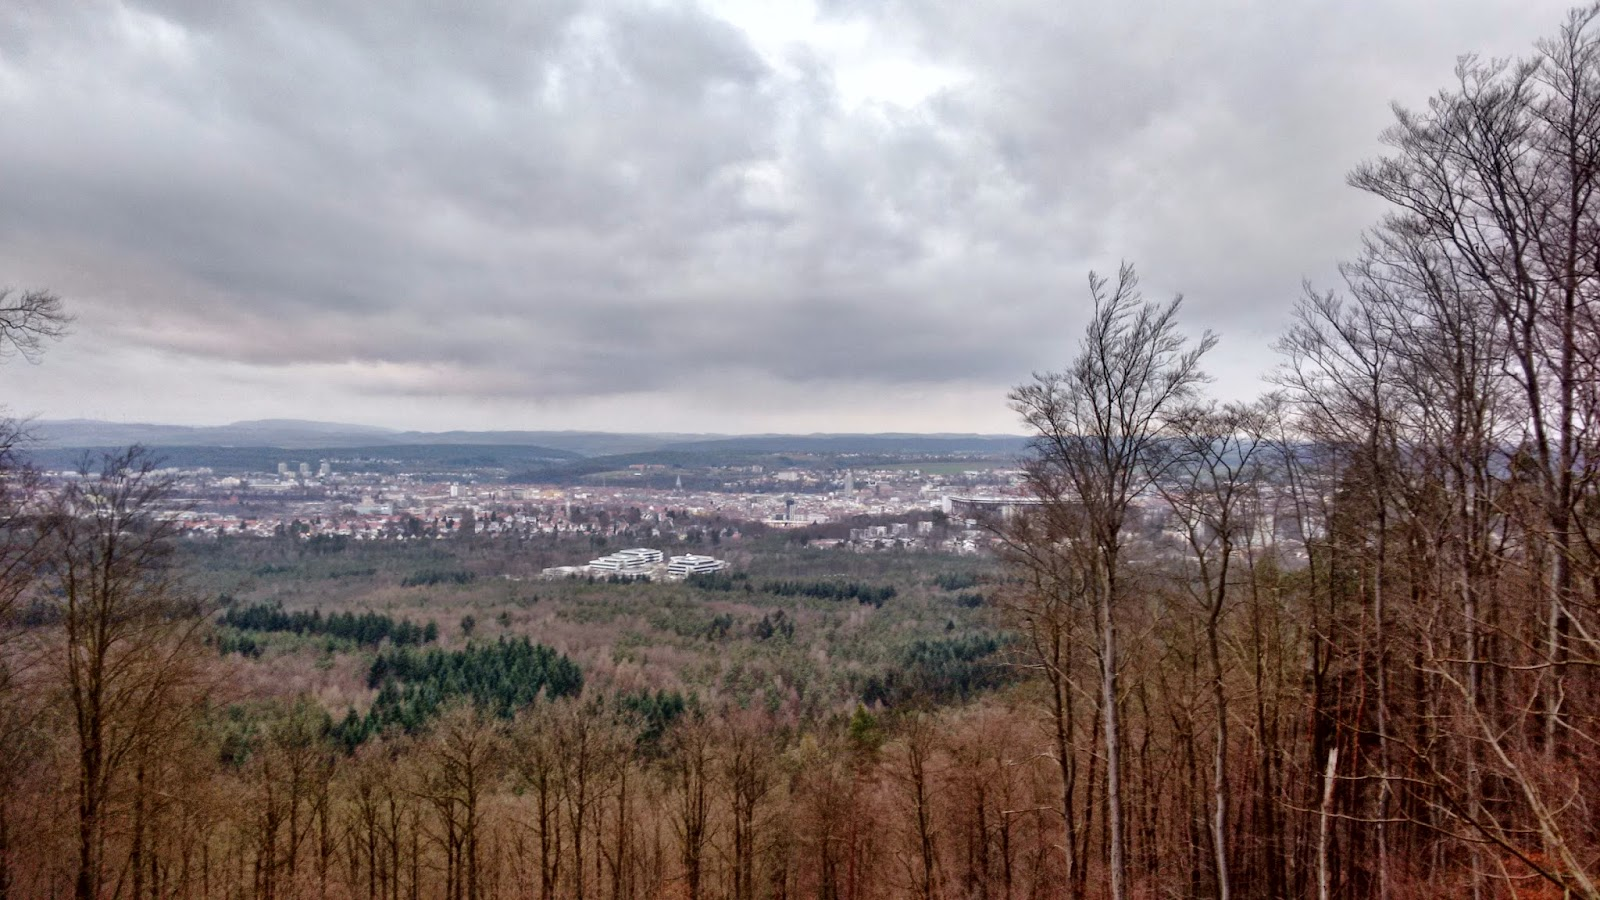 Kaiserslautern view from Humbergturm